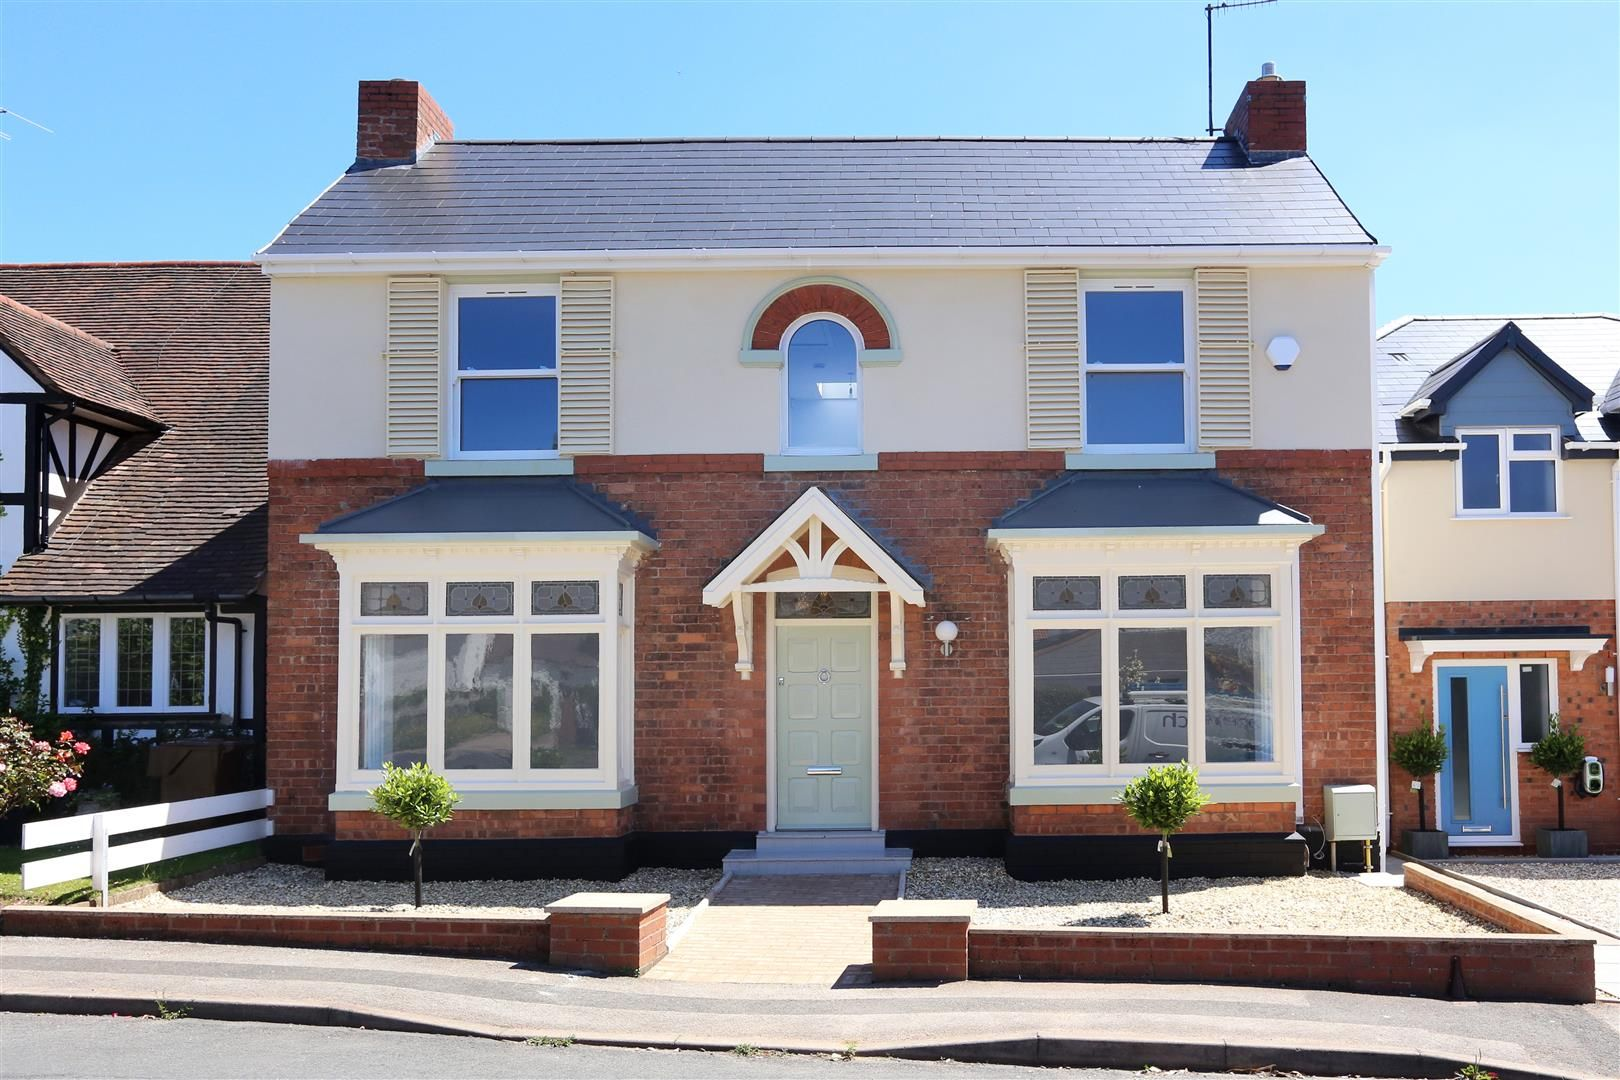 4 bed detached for sale in Hagley  - Property Image 1